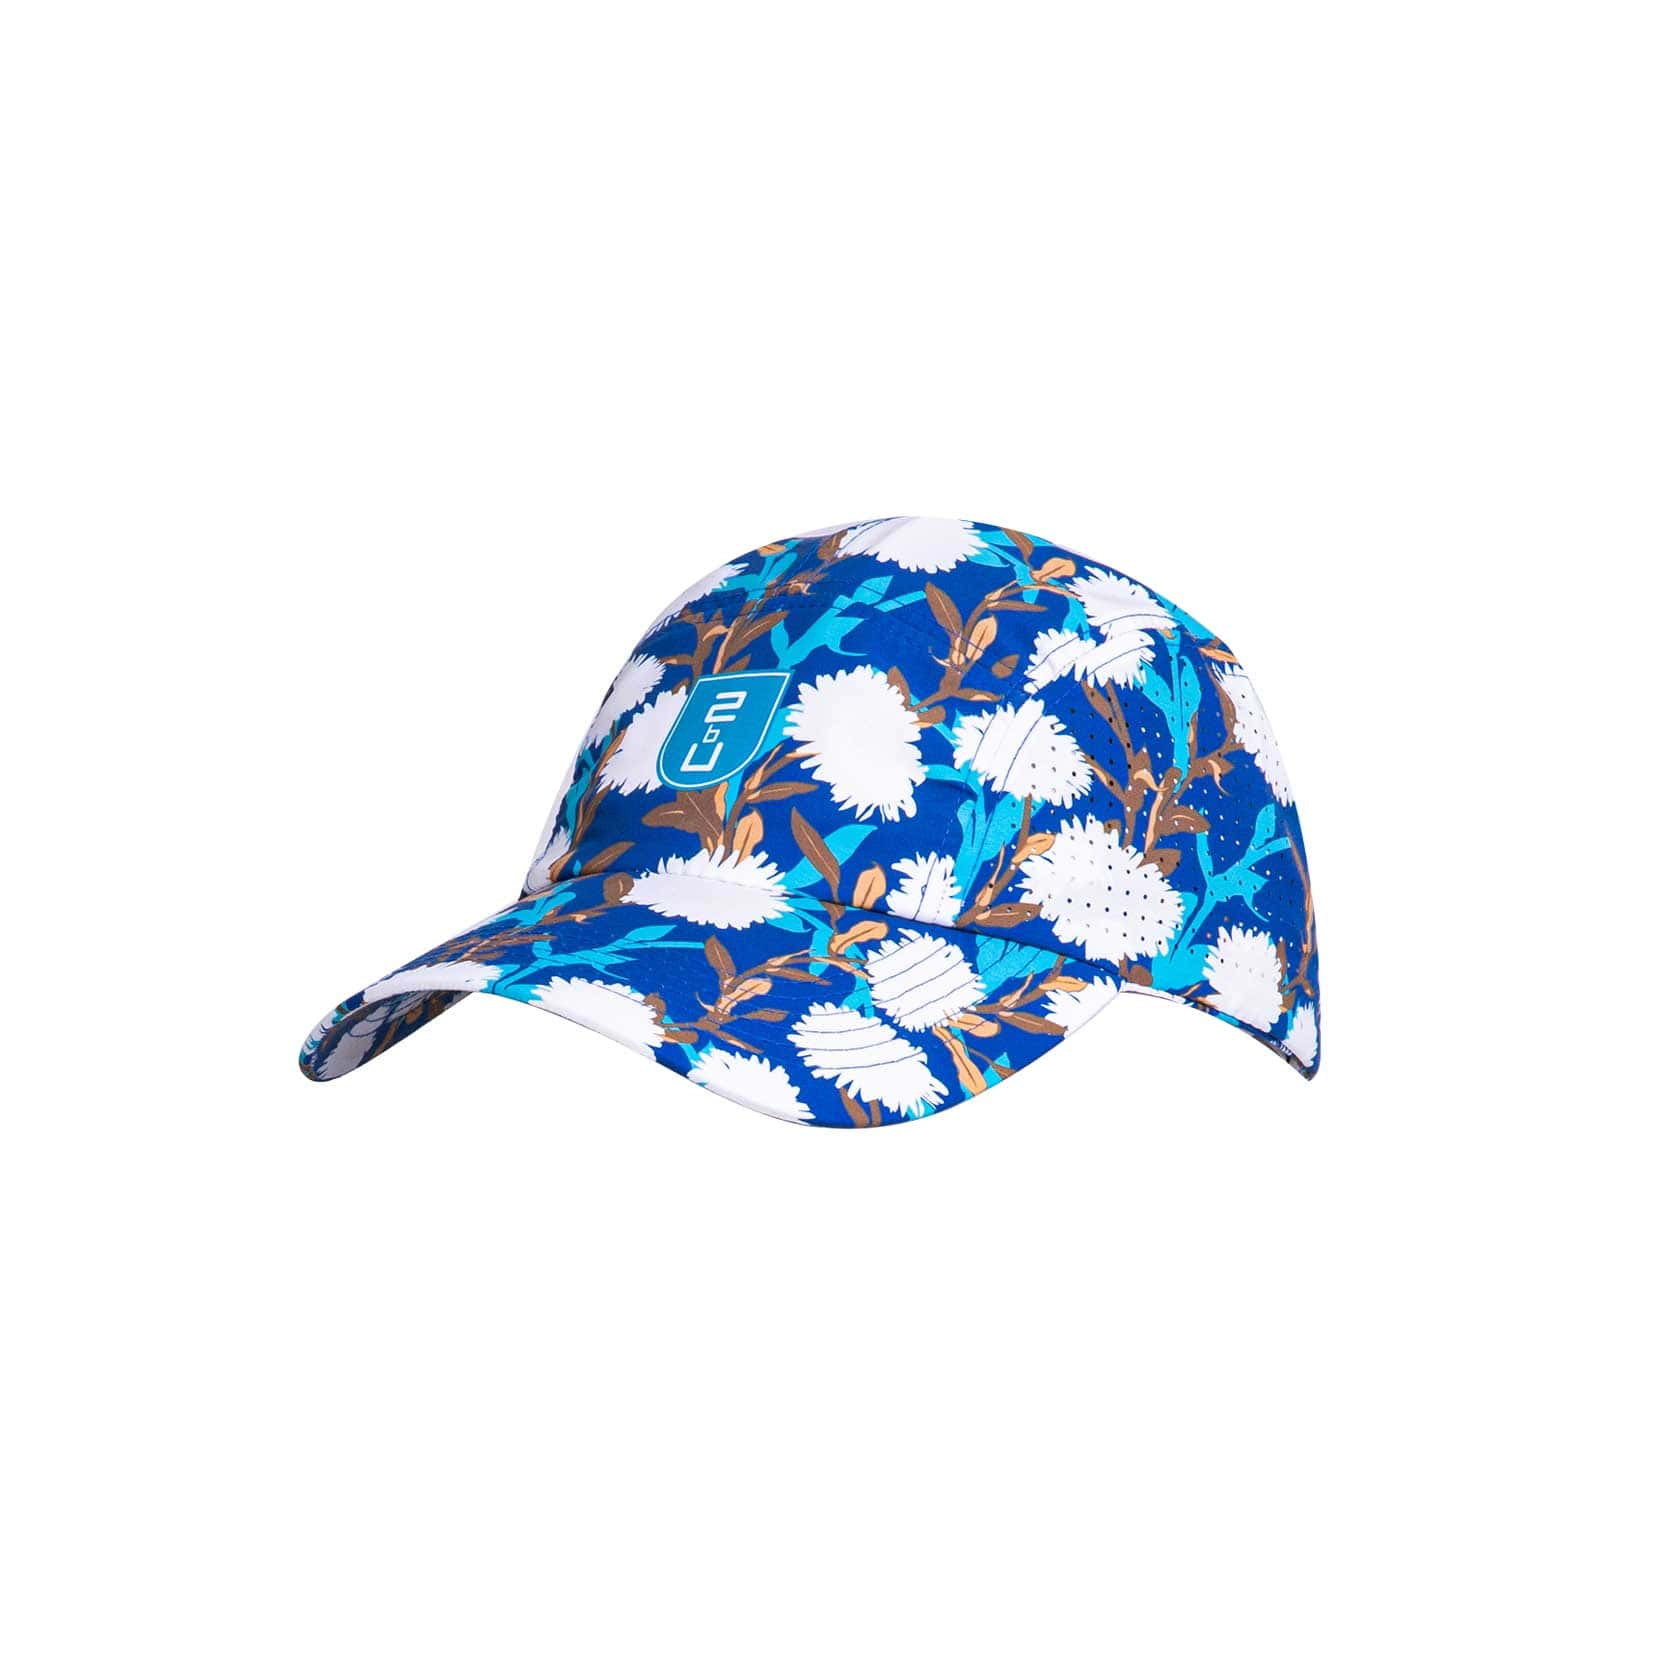 Cap – Bright Blue Flower